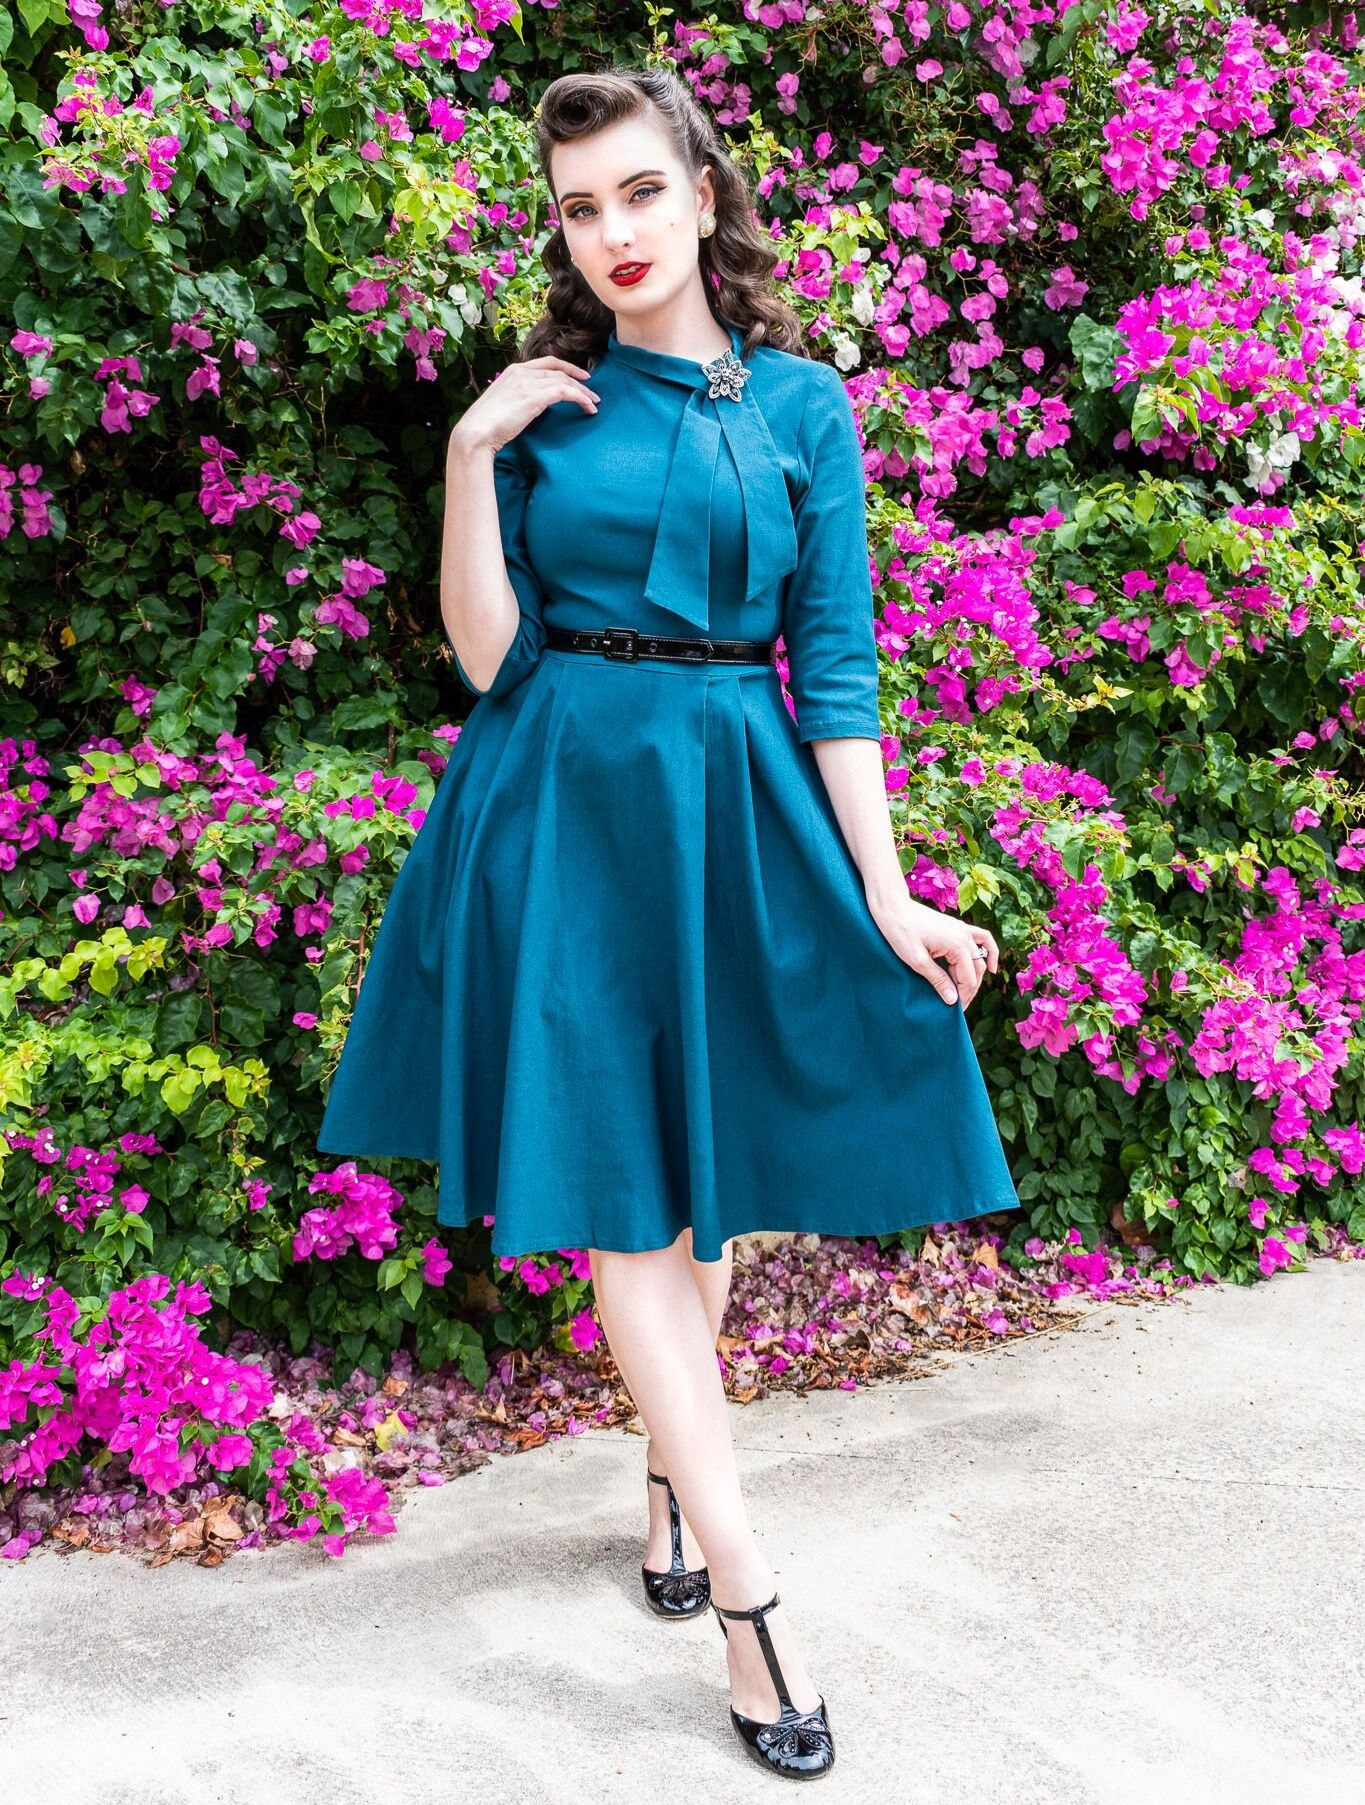 AISIZE Half Collar Tie Swing Dress